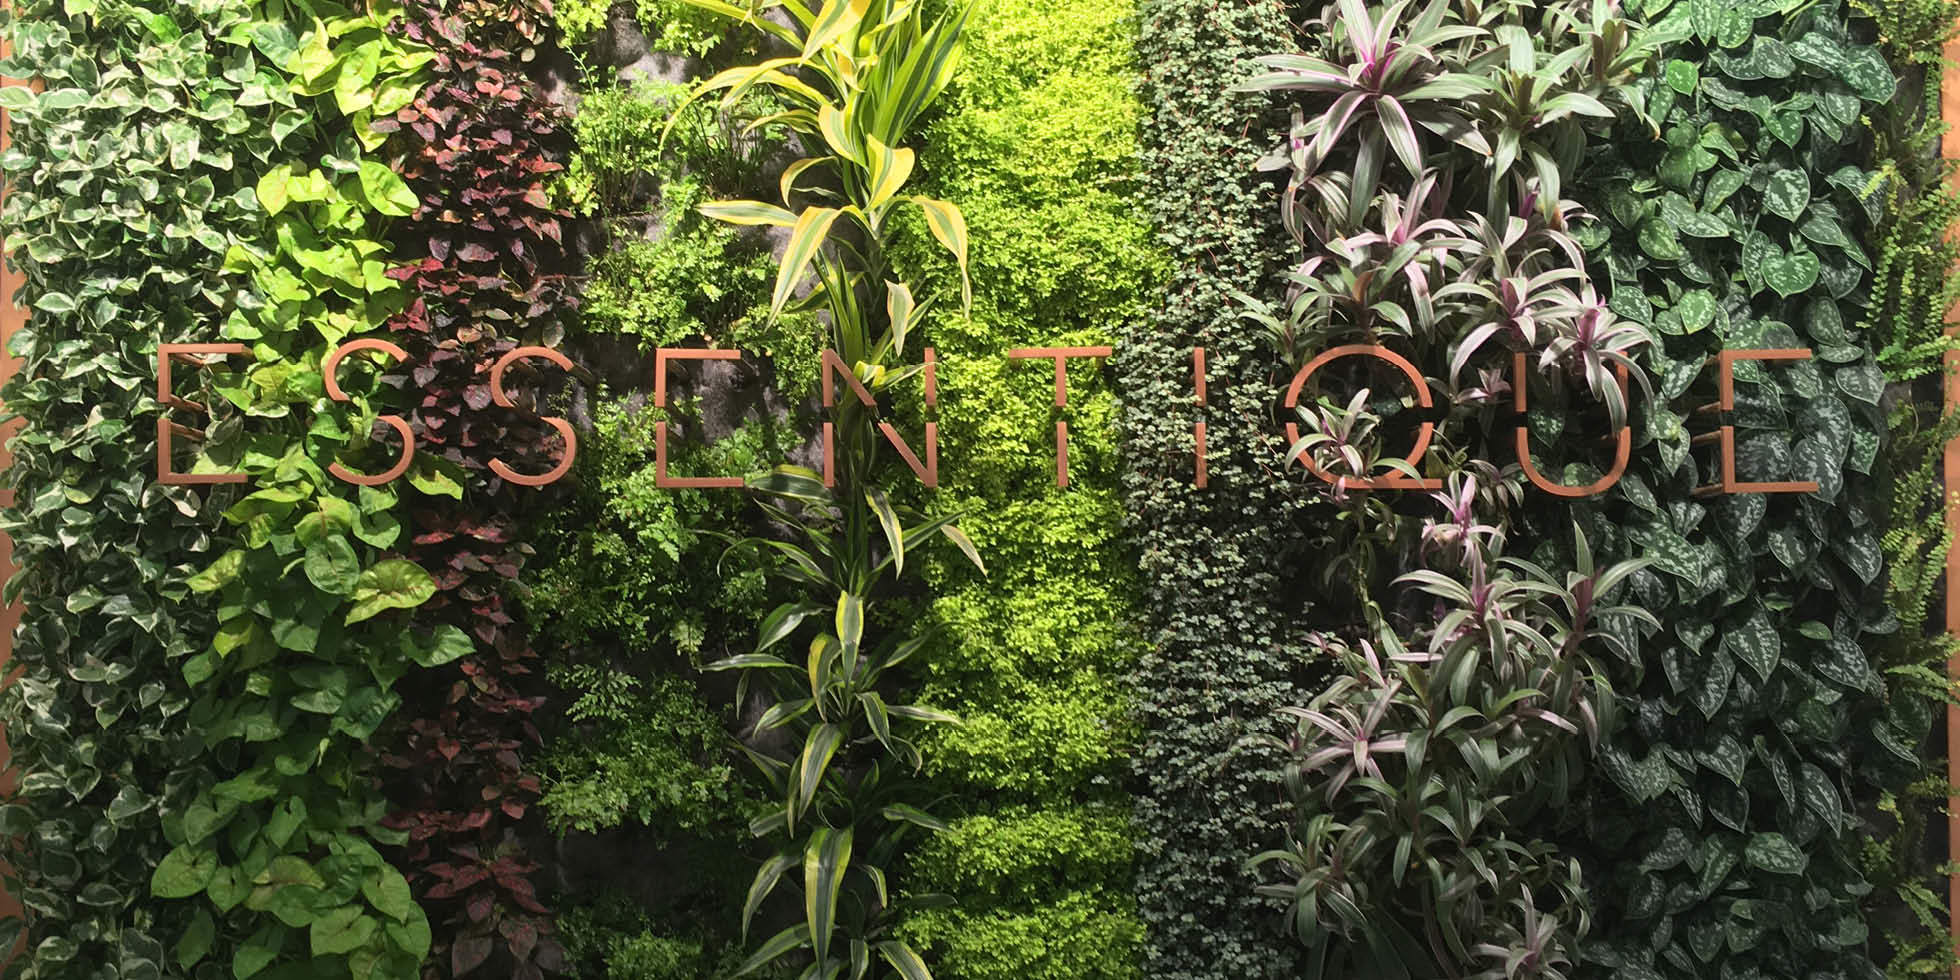 Essentique Living Wall by Habitat Horticulture - View 2